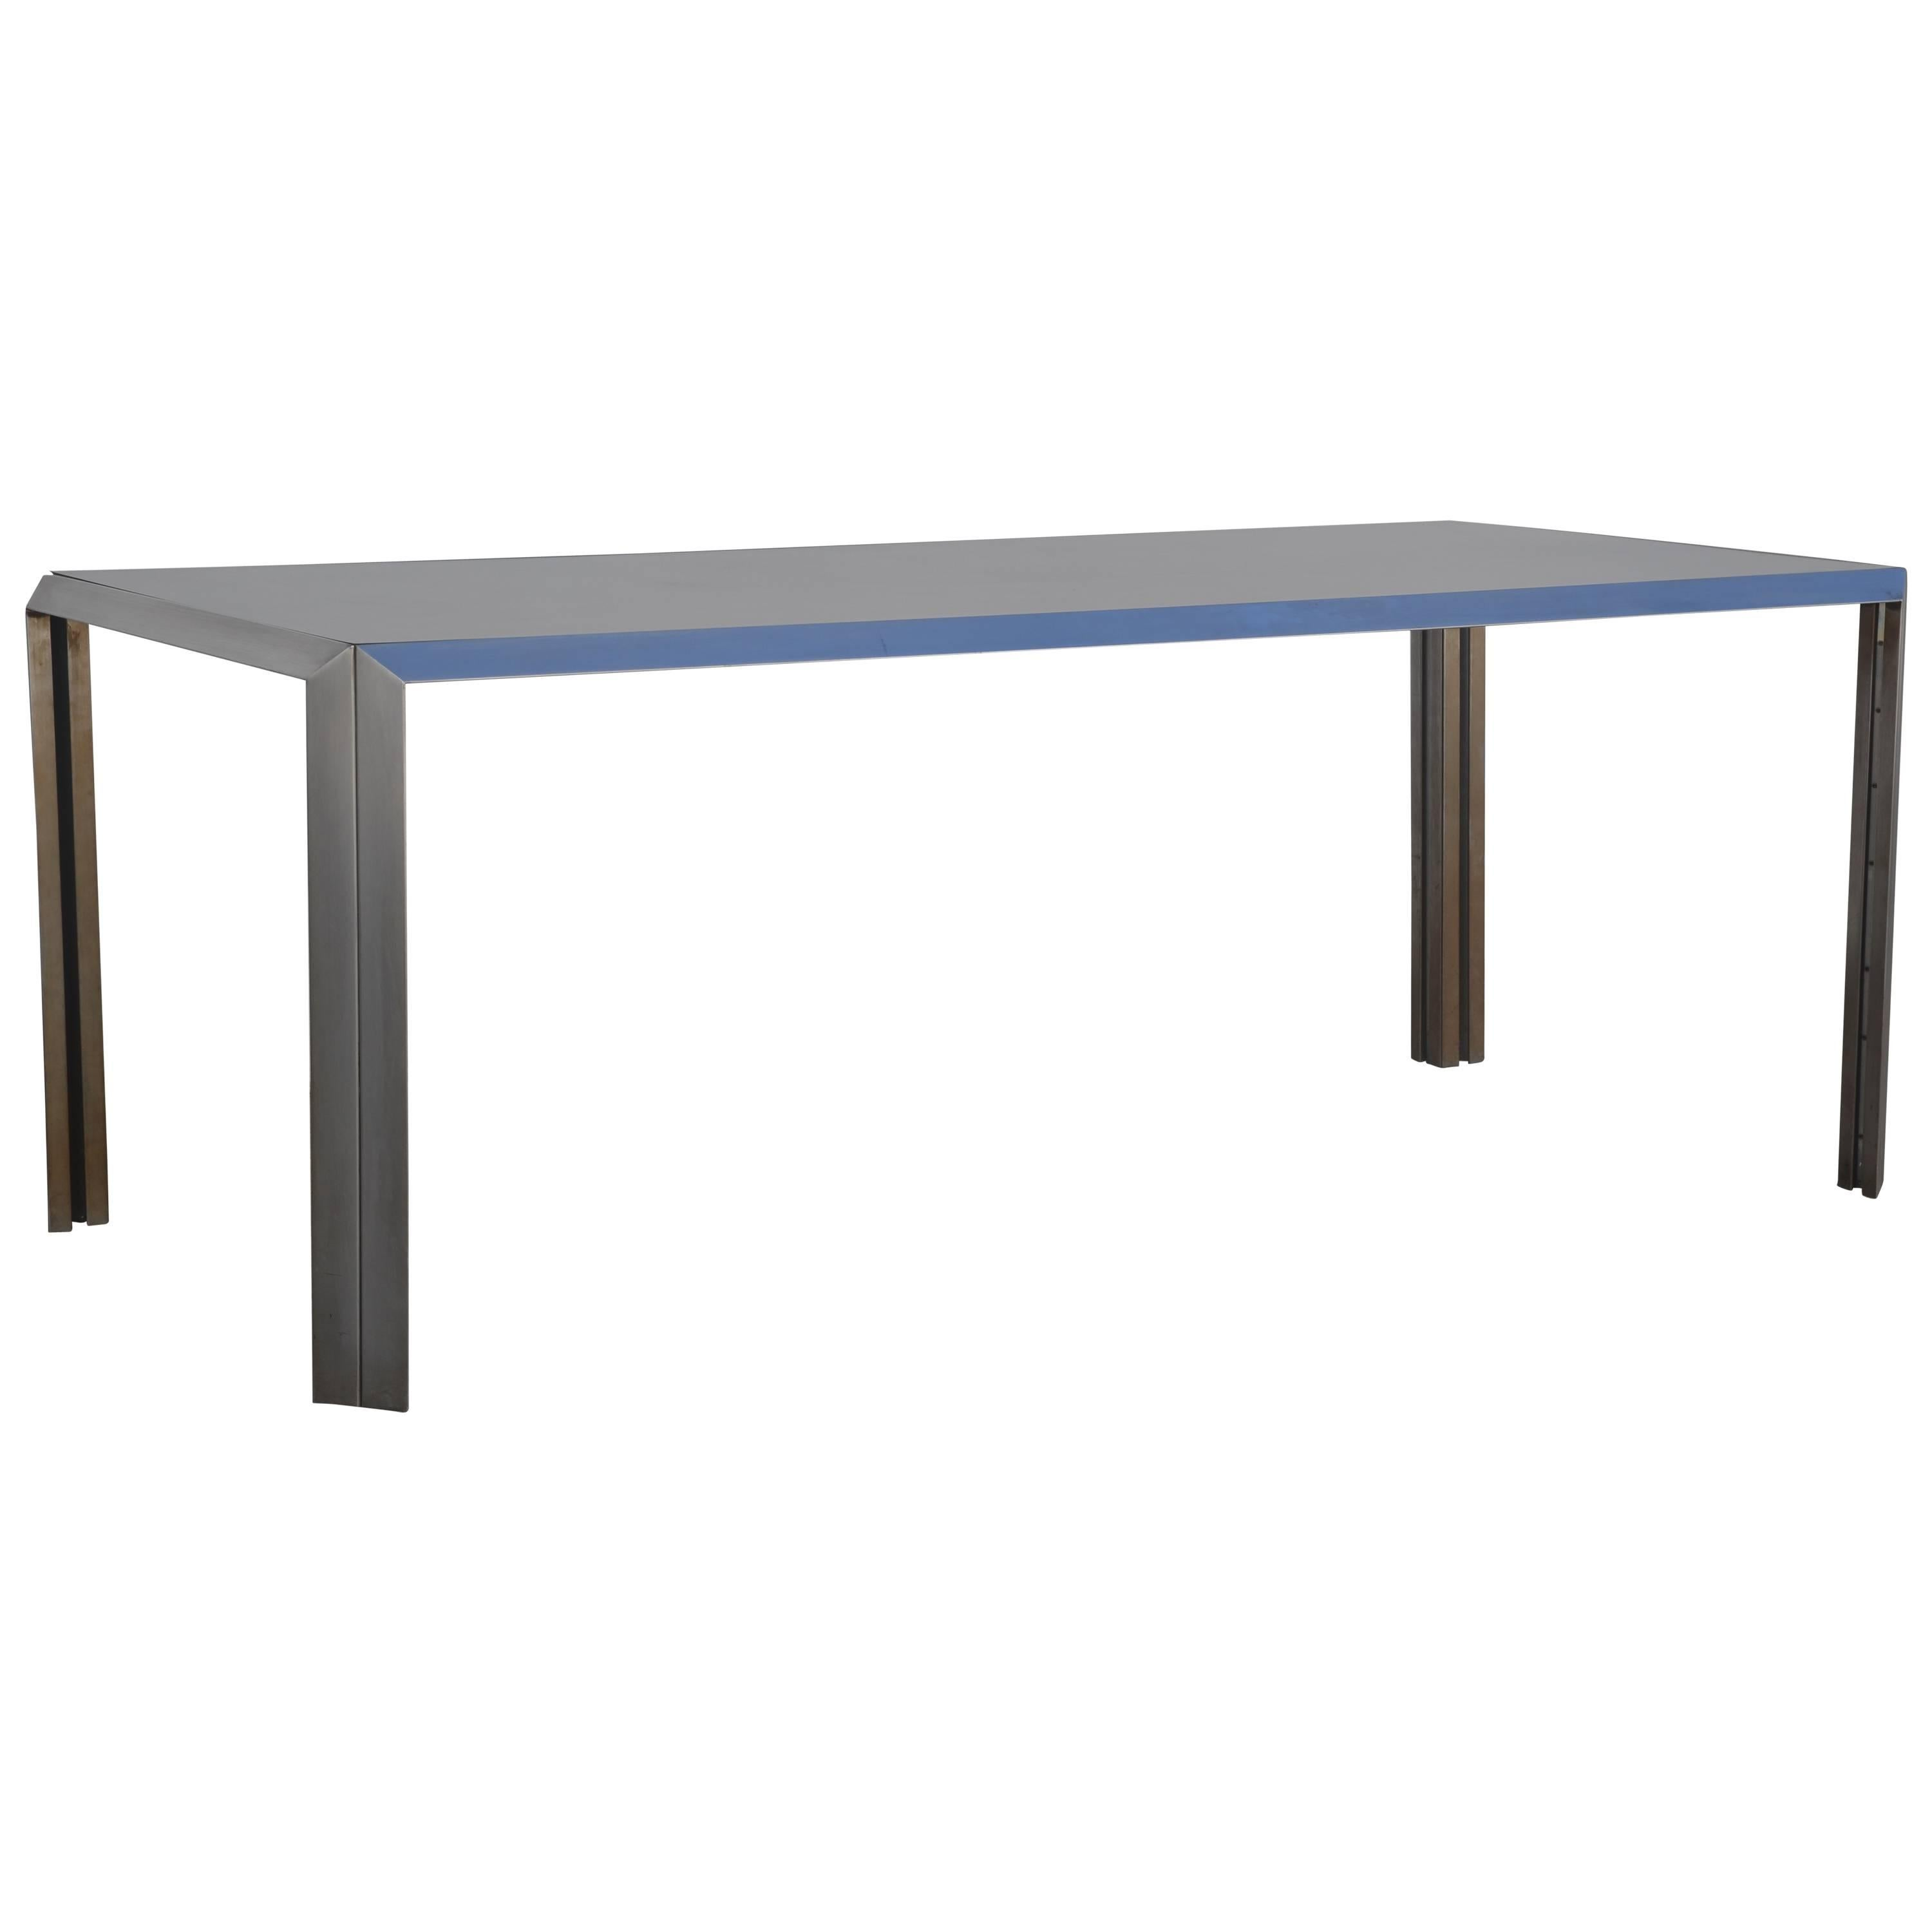 Rare Brushed Stainless Steel and Laminate Desk by Bernard Marange for TFM